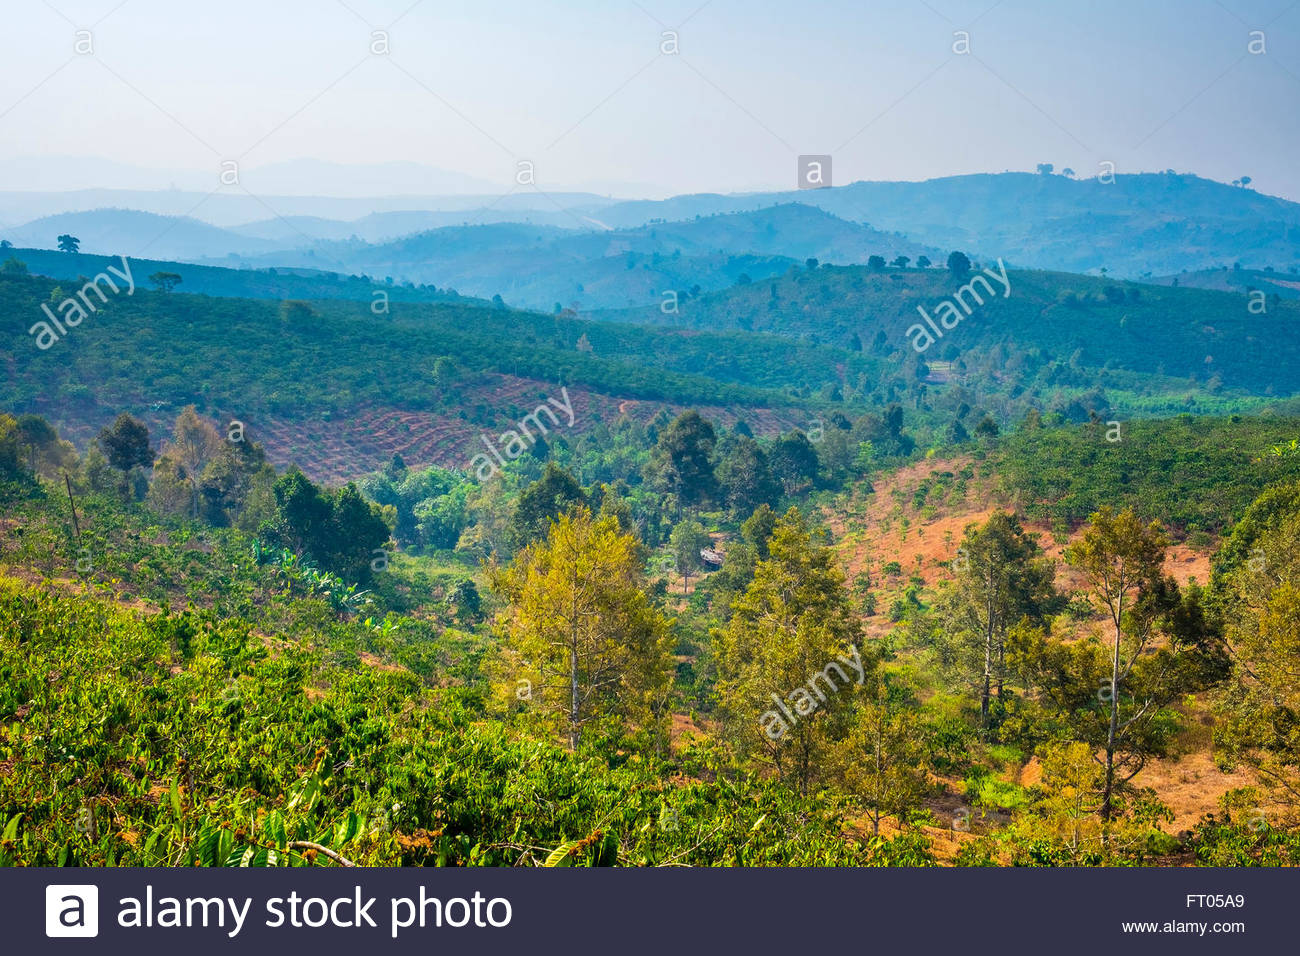 Rolling hills and coffee plantations in Central Highlands, Bao Loc, Lam Dong Province, Vietnam - Stock Image